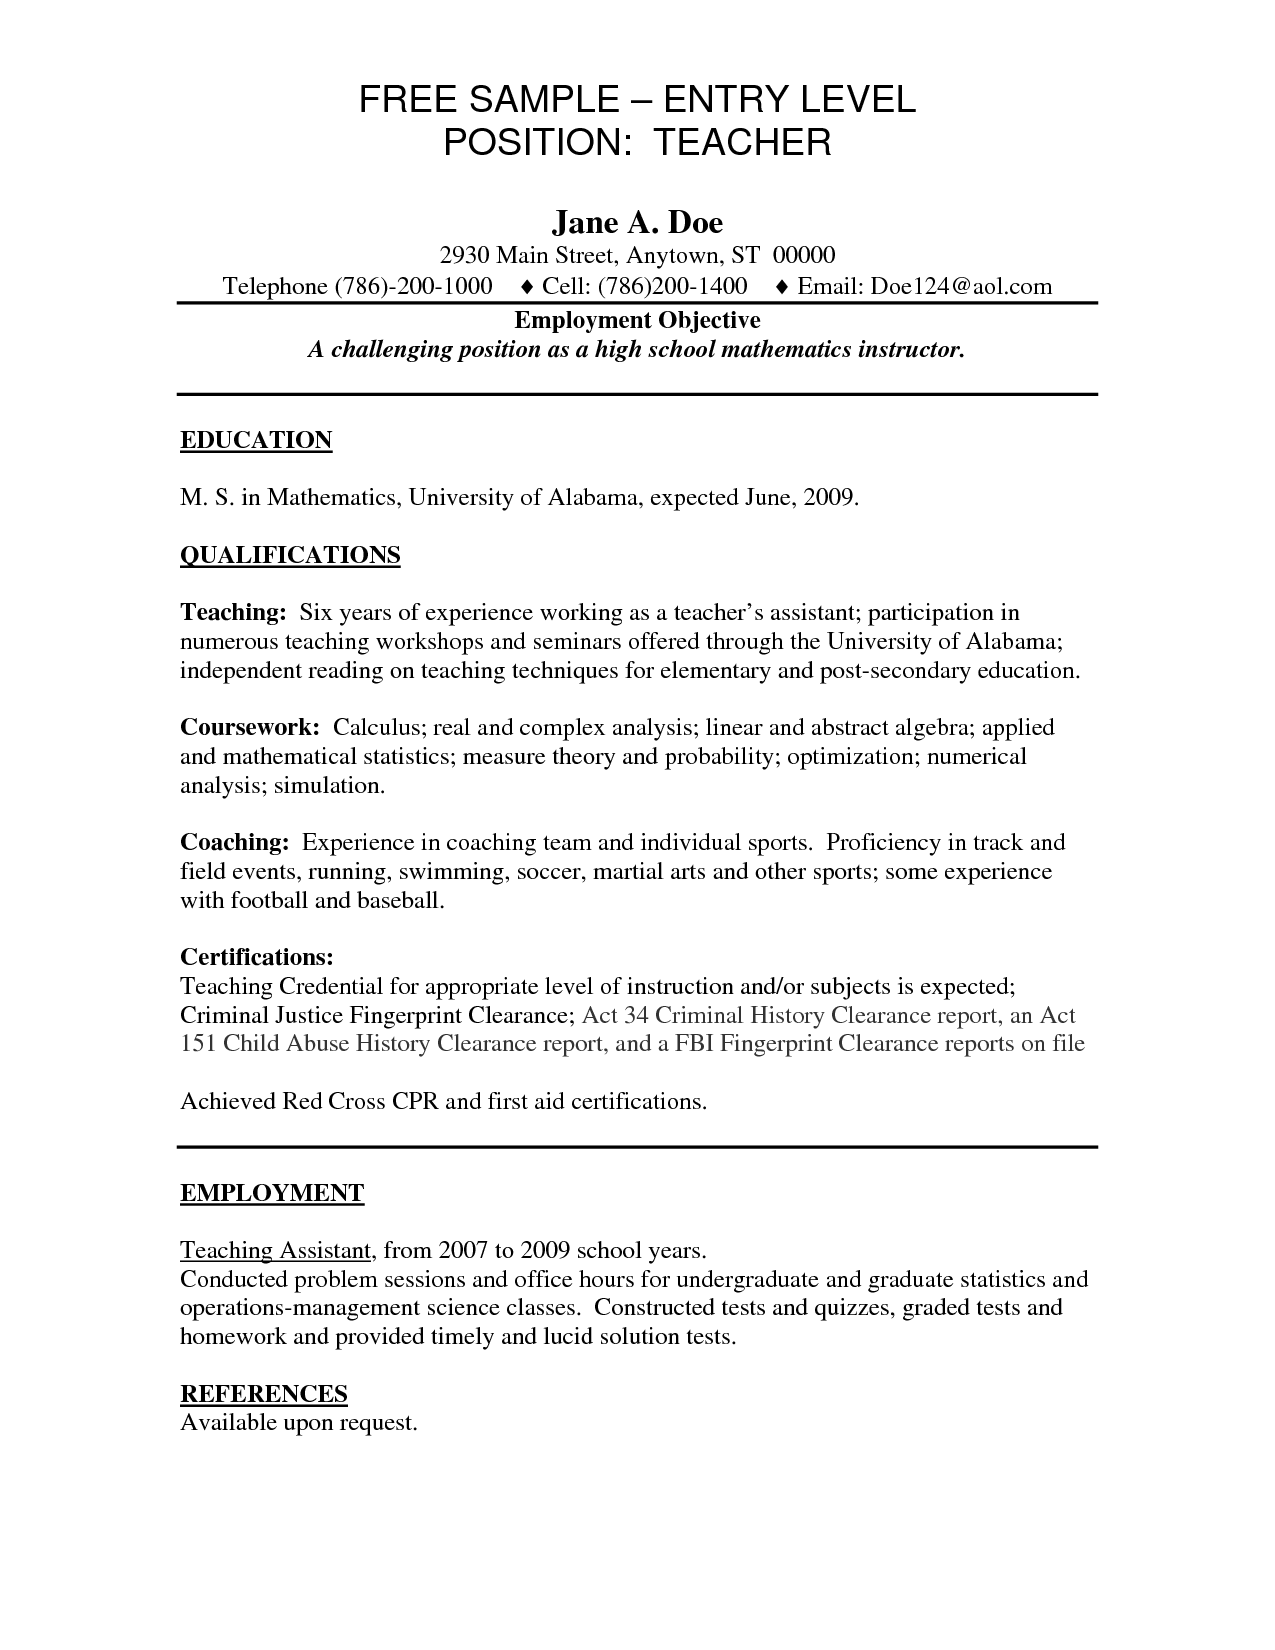 entry level teacher resume art example teaching jobs lawteched free template for - Resume Sample For Entry Level